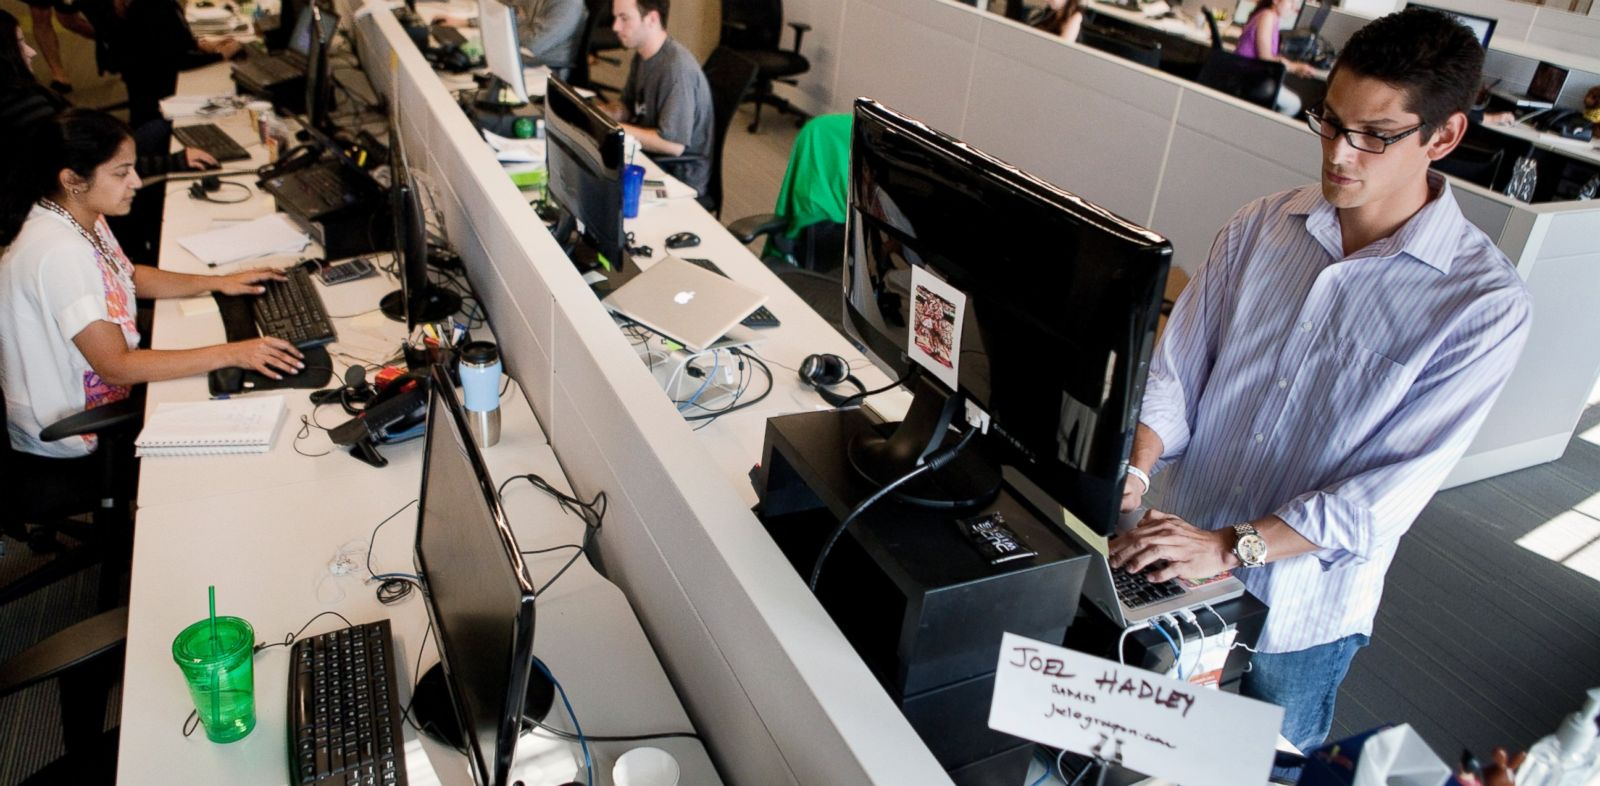 PHOTO: Joel Hadley, right, uses a standing desk at the Groupon offices in Chicago, July 30, 2012.